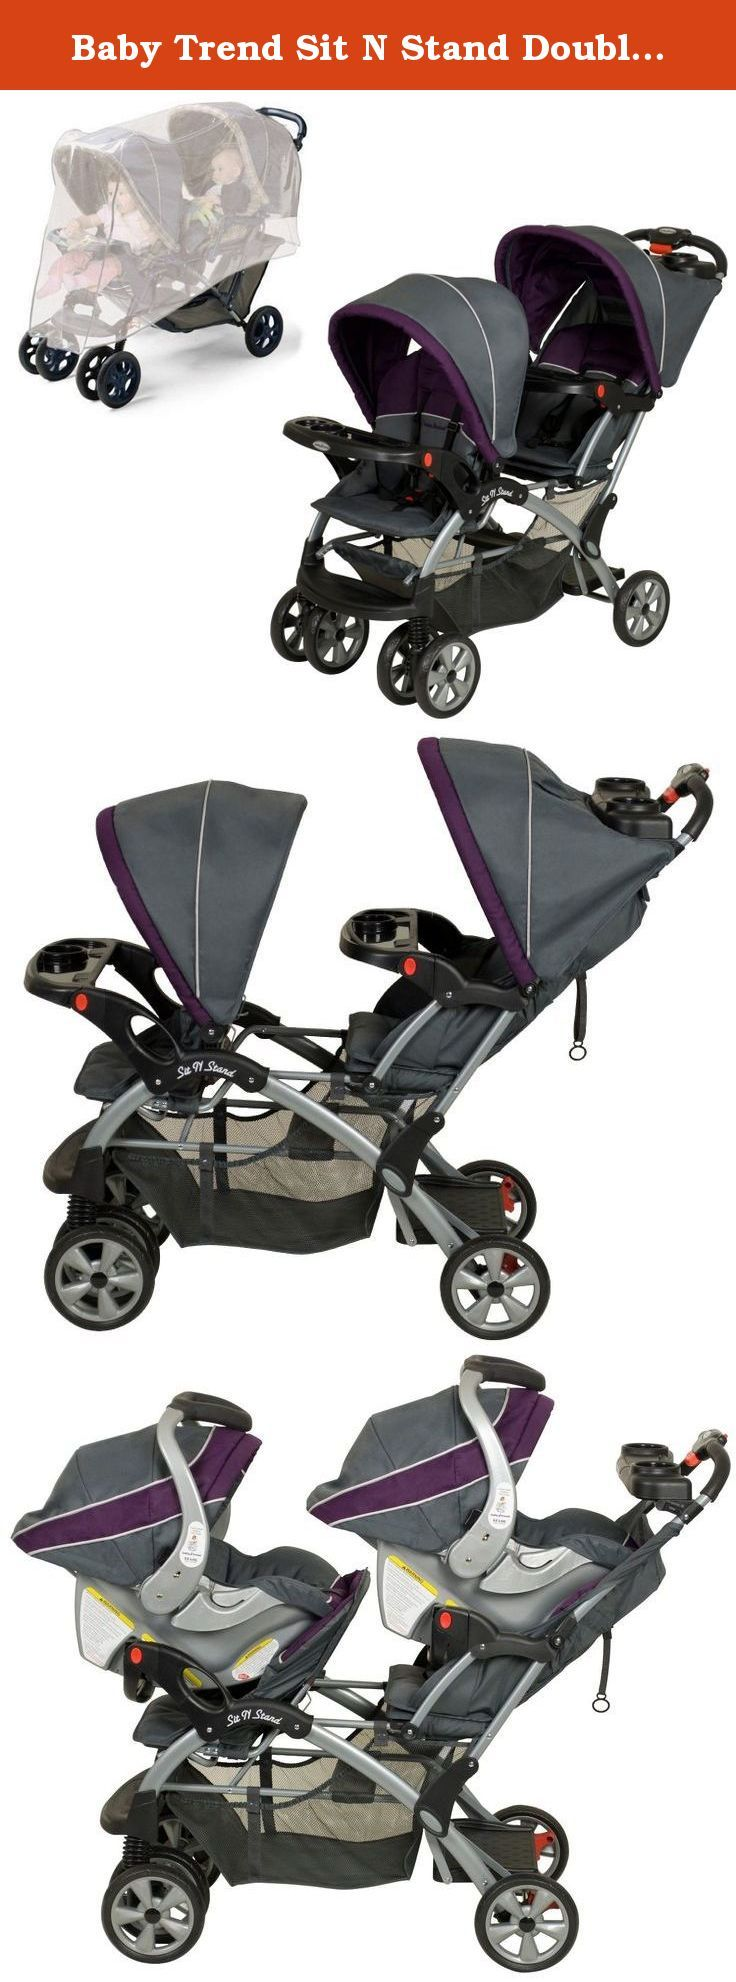 Baby Trend Sit N Stand Double Stroller with Stroller